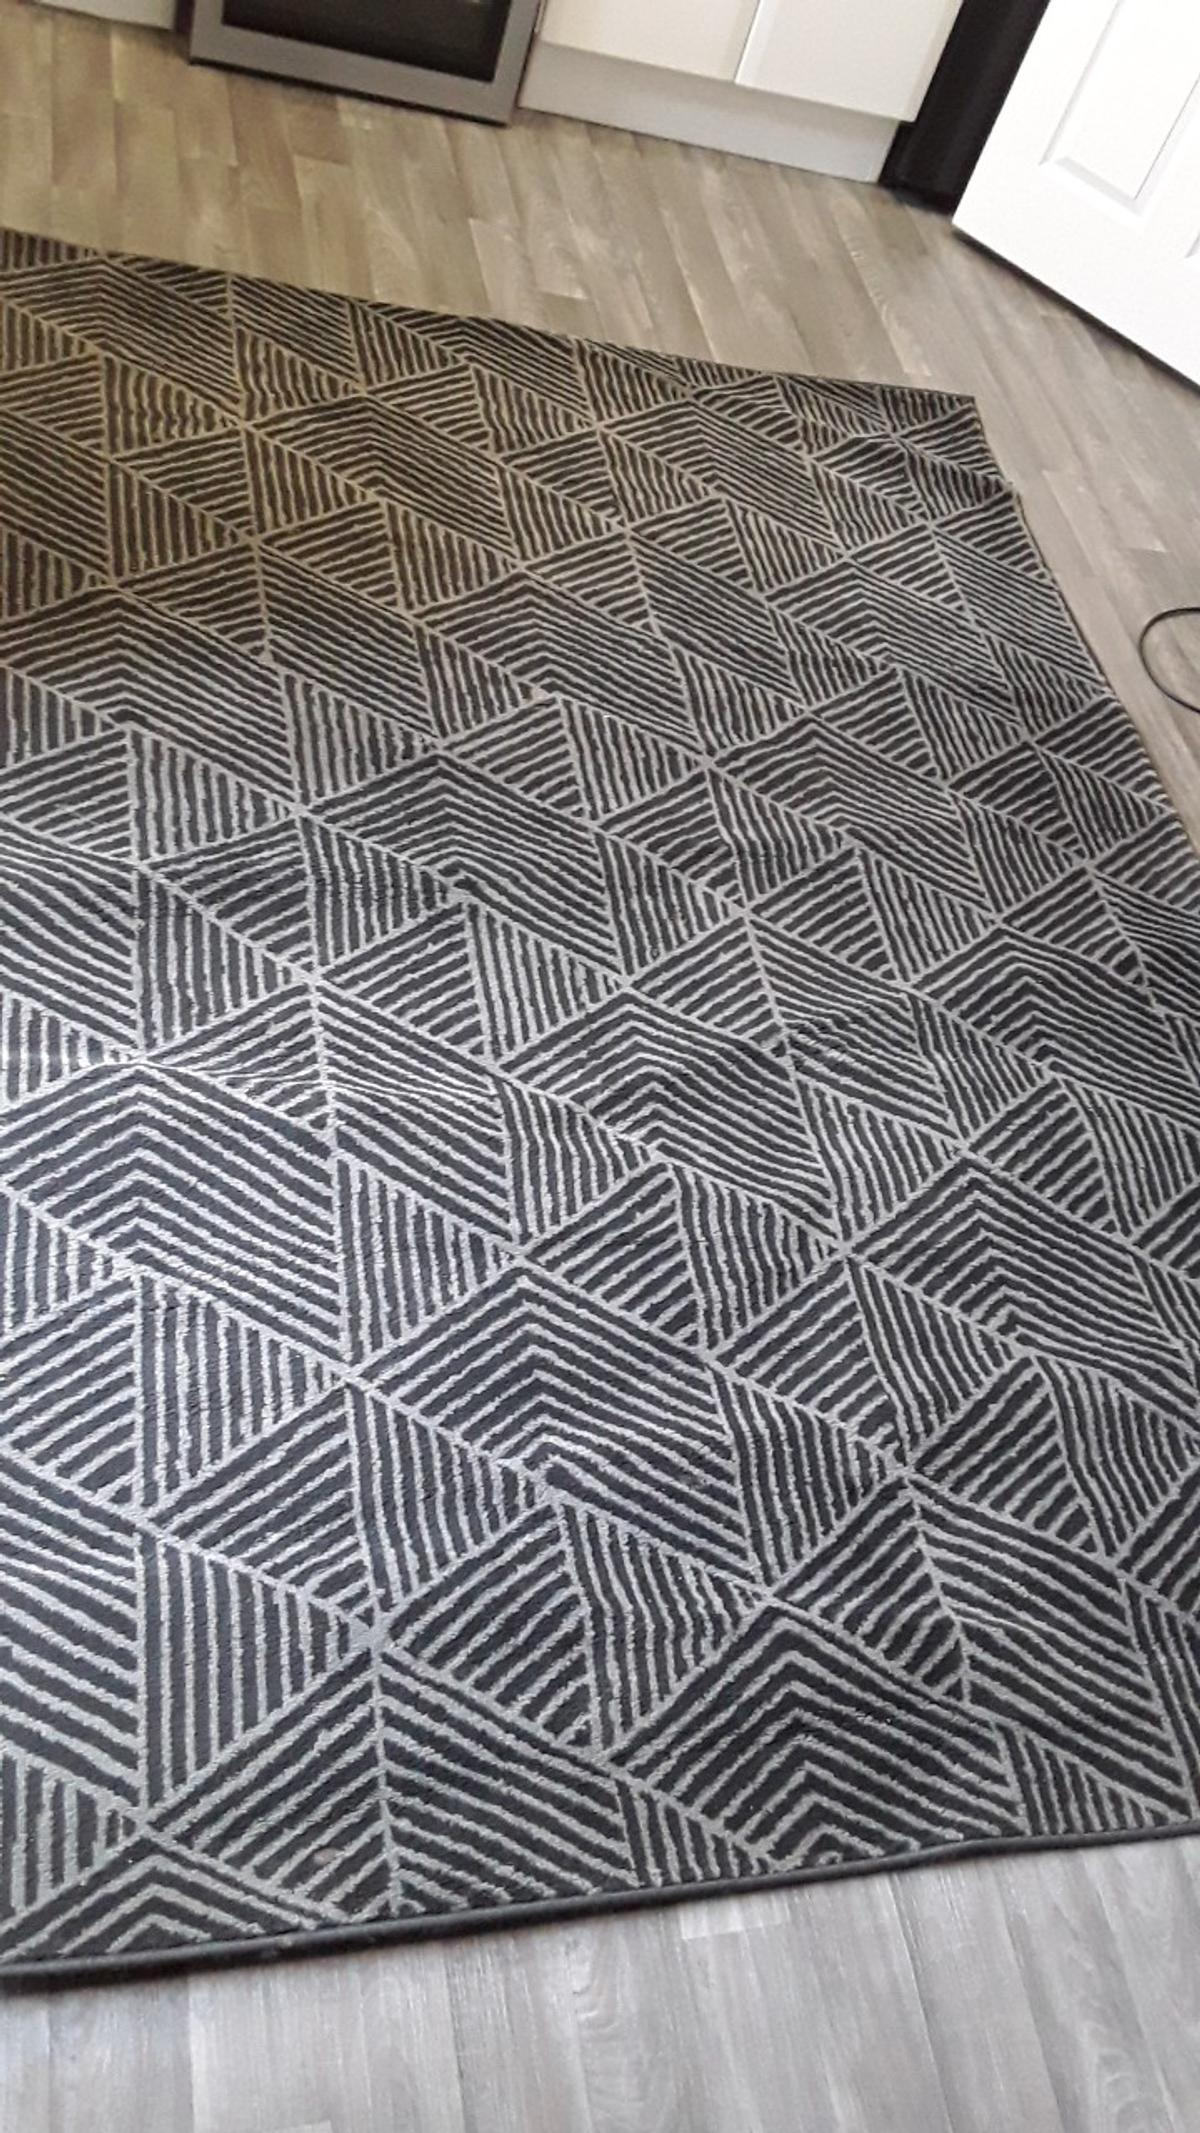 black and grey rug xl excellent condition like new